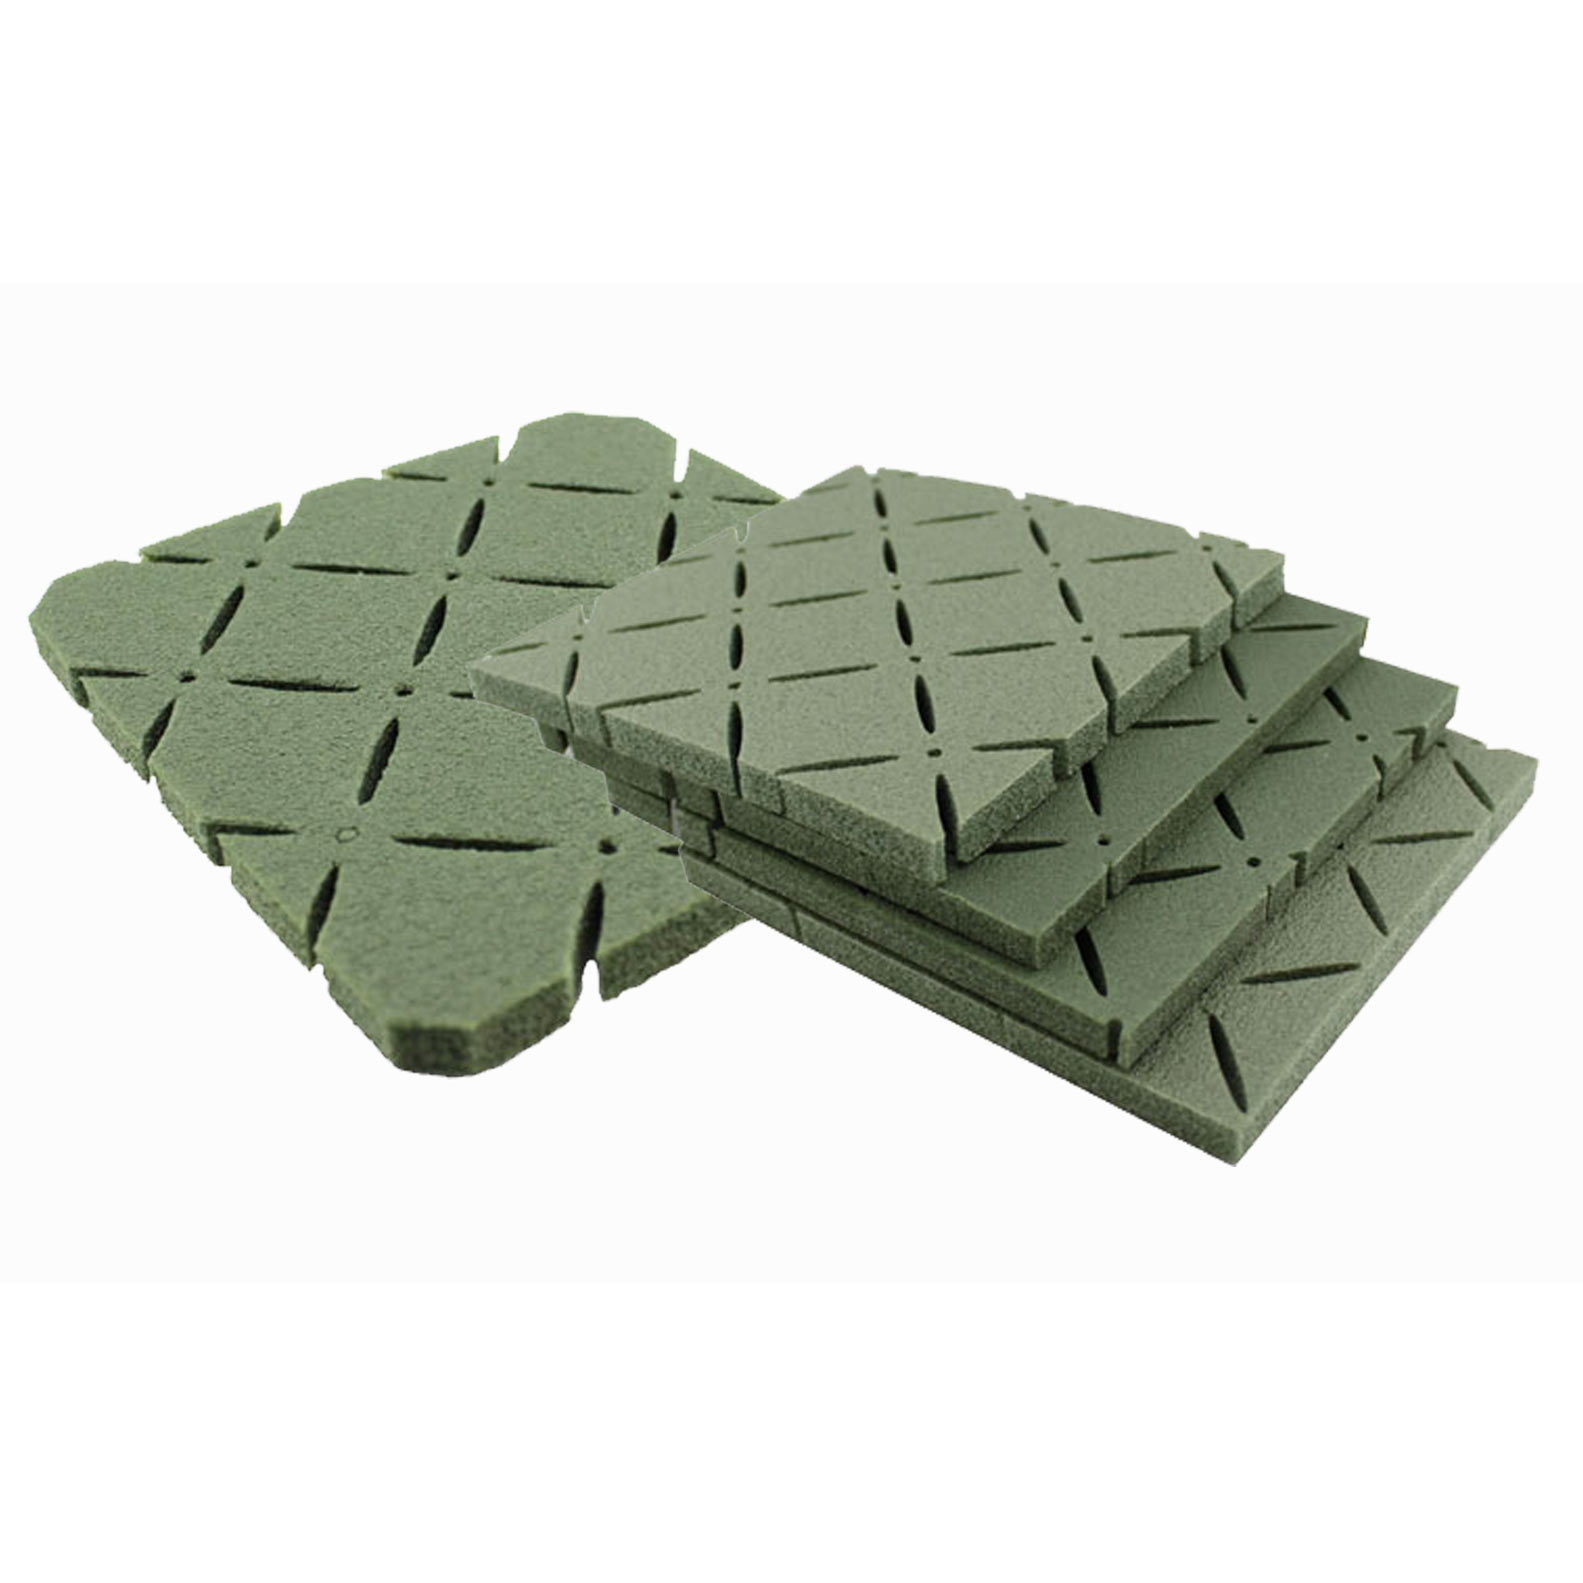 Shock pads for artificial grass installation, playgrounds safety pads